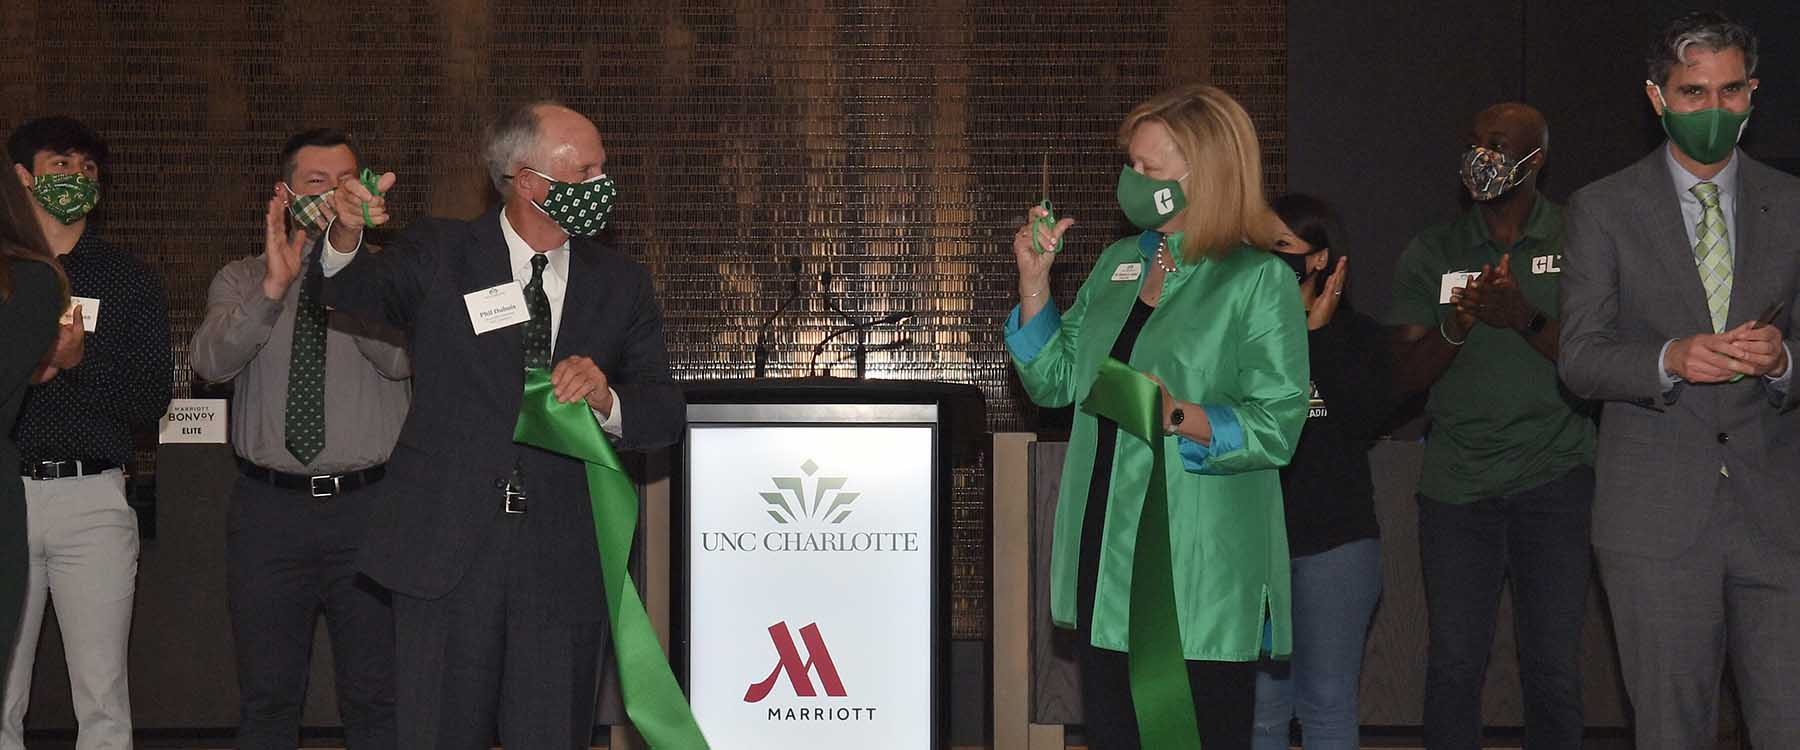 UNC Charlotte Marriott Hotel & Conference Center officially opens